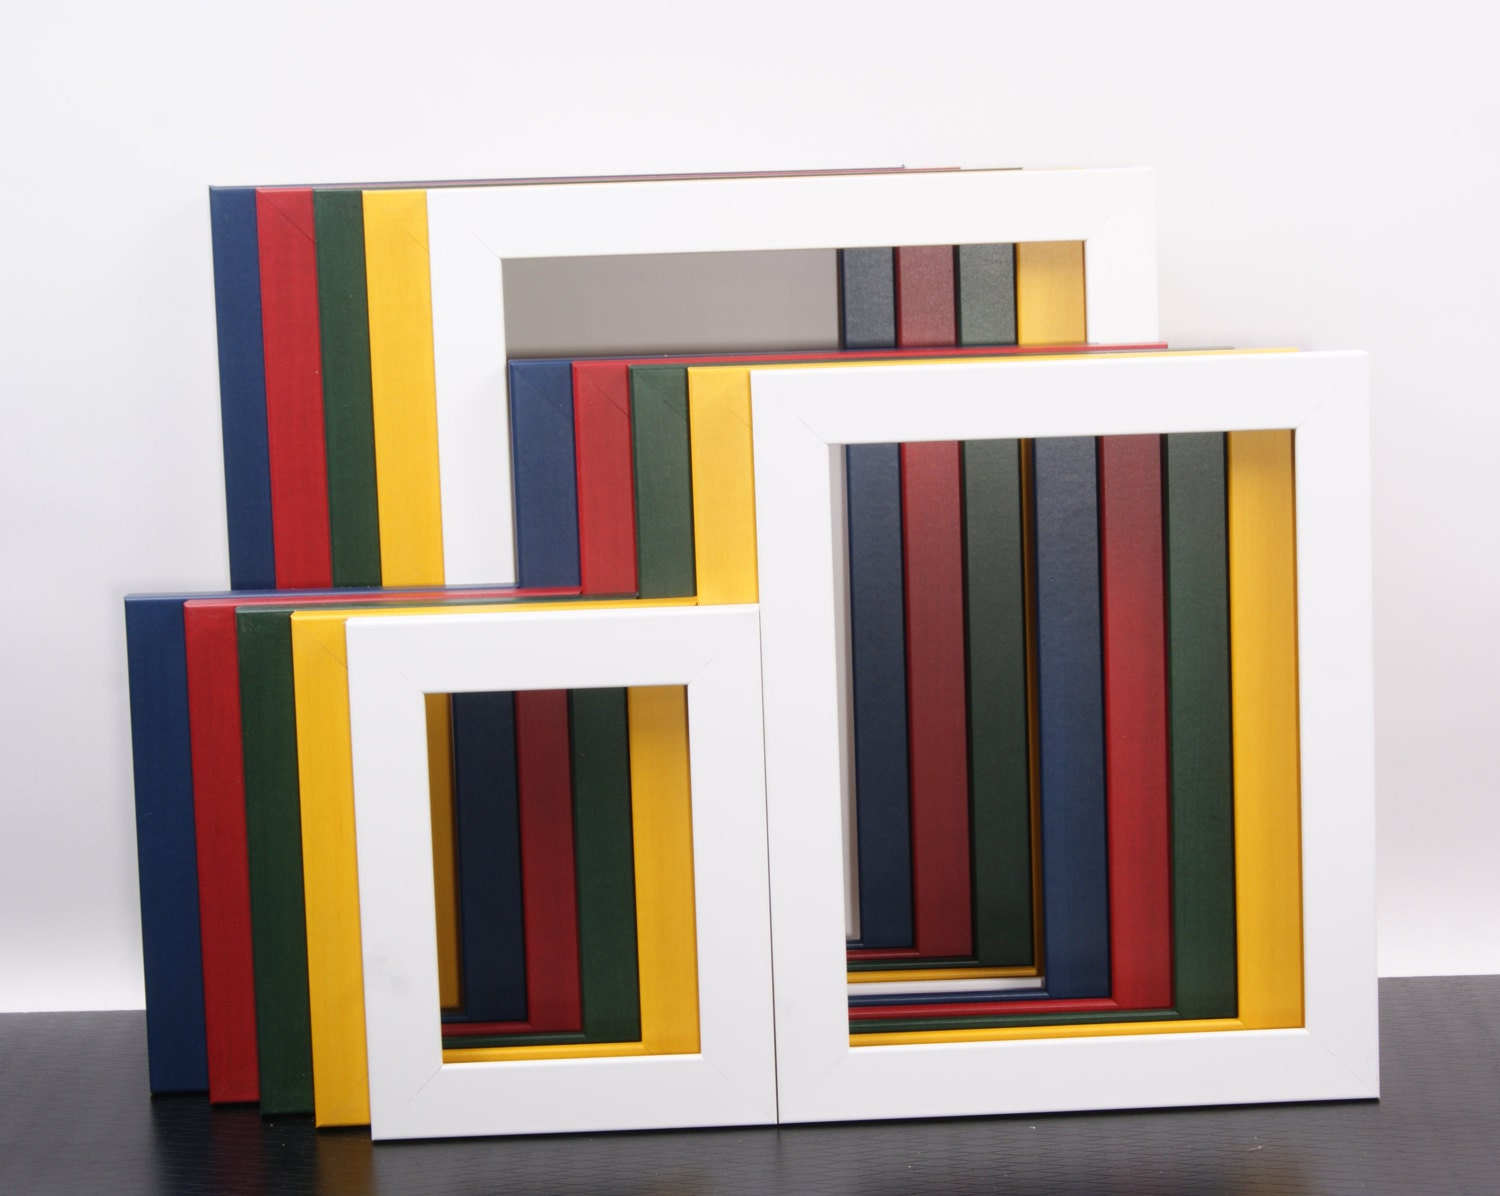 4x4 24x24 Red Blue Green Yellow White Frames For Art